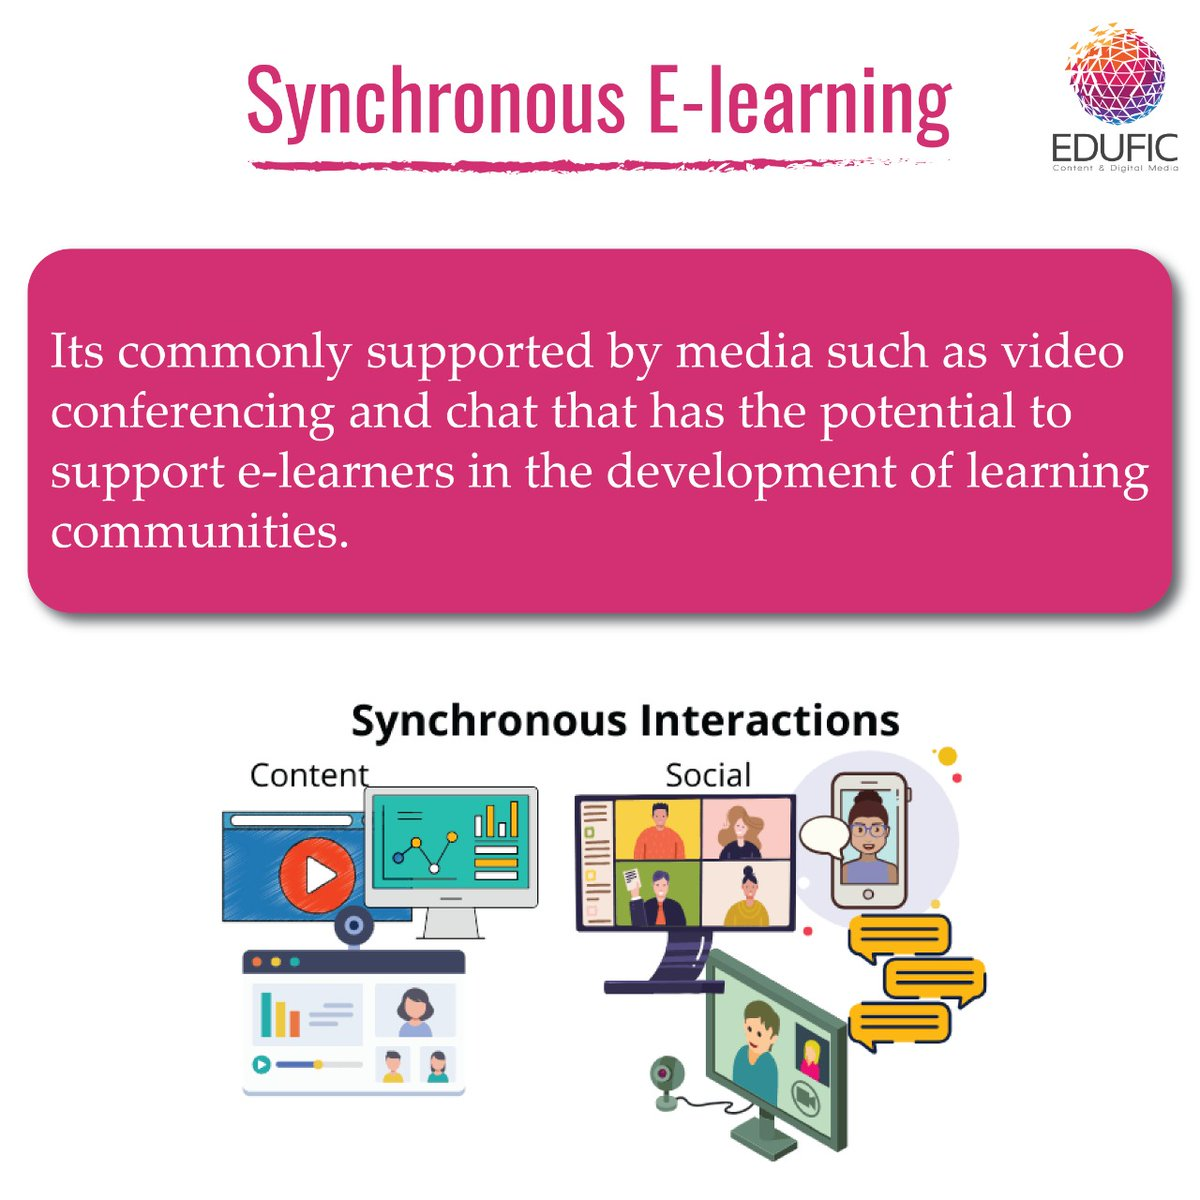 Learners and teachers experience synchronous e-learning as more social and avoid frustration by asking and answering questions in real-time. Follow this space to know more about asynchronous e-learning. #elearning #education #onlinelearning #learning #covid #edtech #online https://t.co/mUo9Bjdzfg